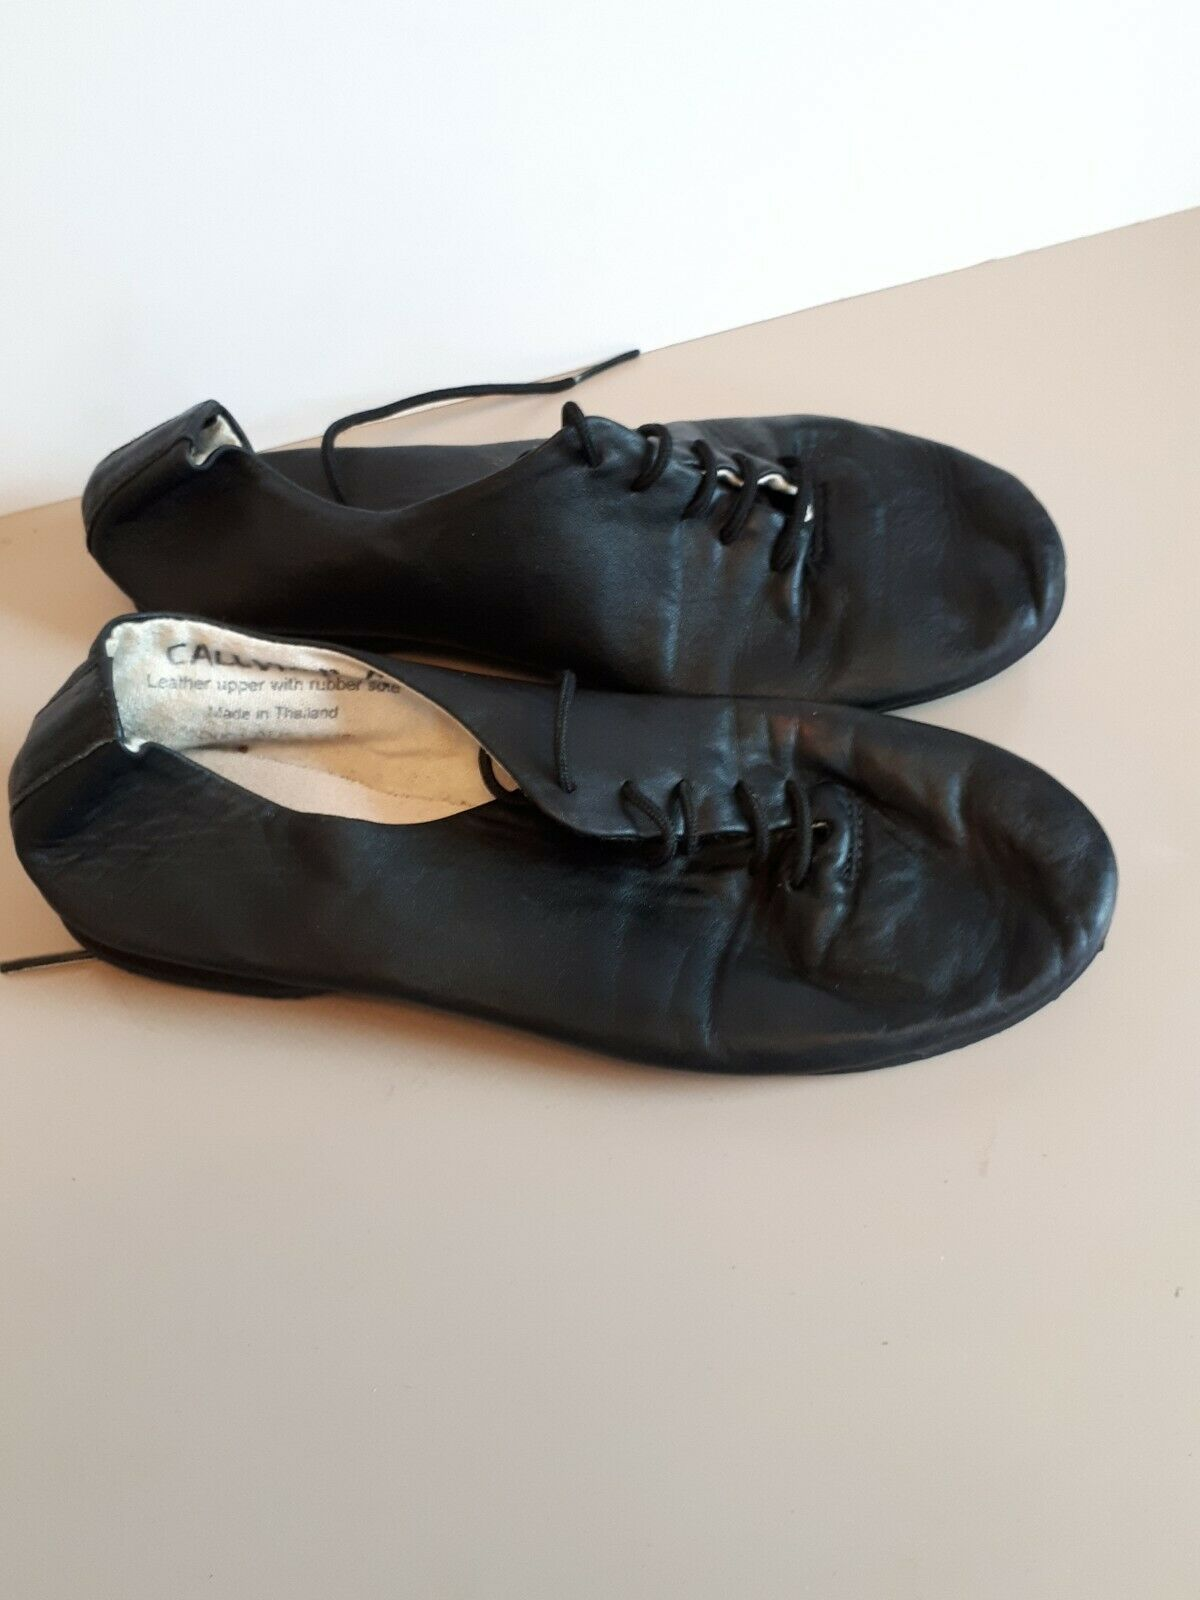 CHILDS BLACK LEATHER UPPER, LACE UP DANCE / JAZZ SHOES. USED. SIZE 12 ( 30 ).